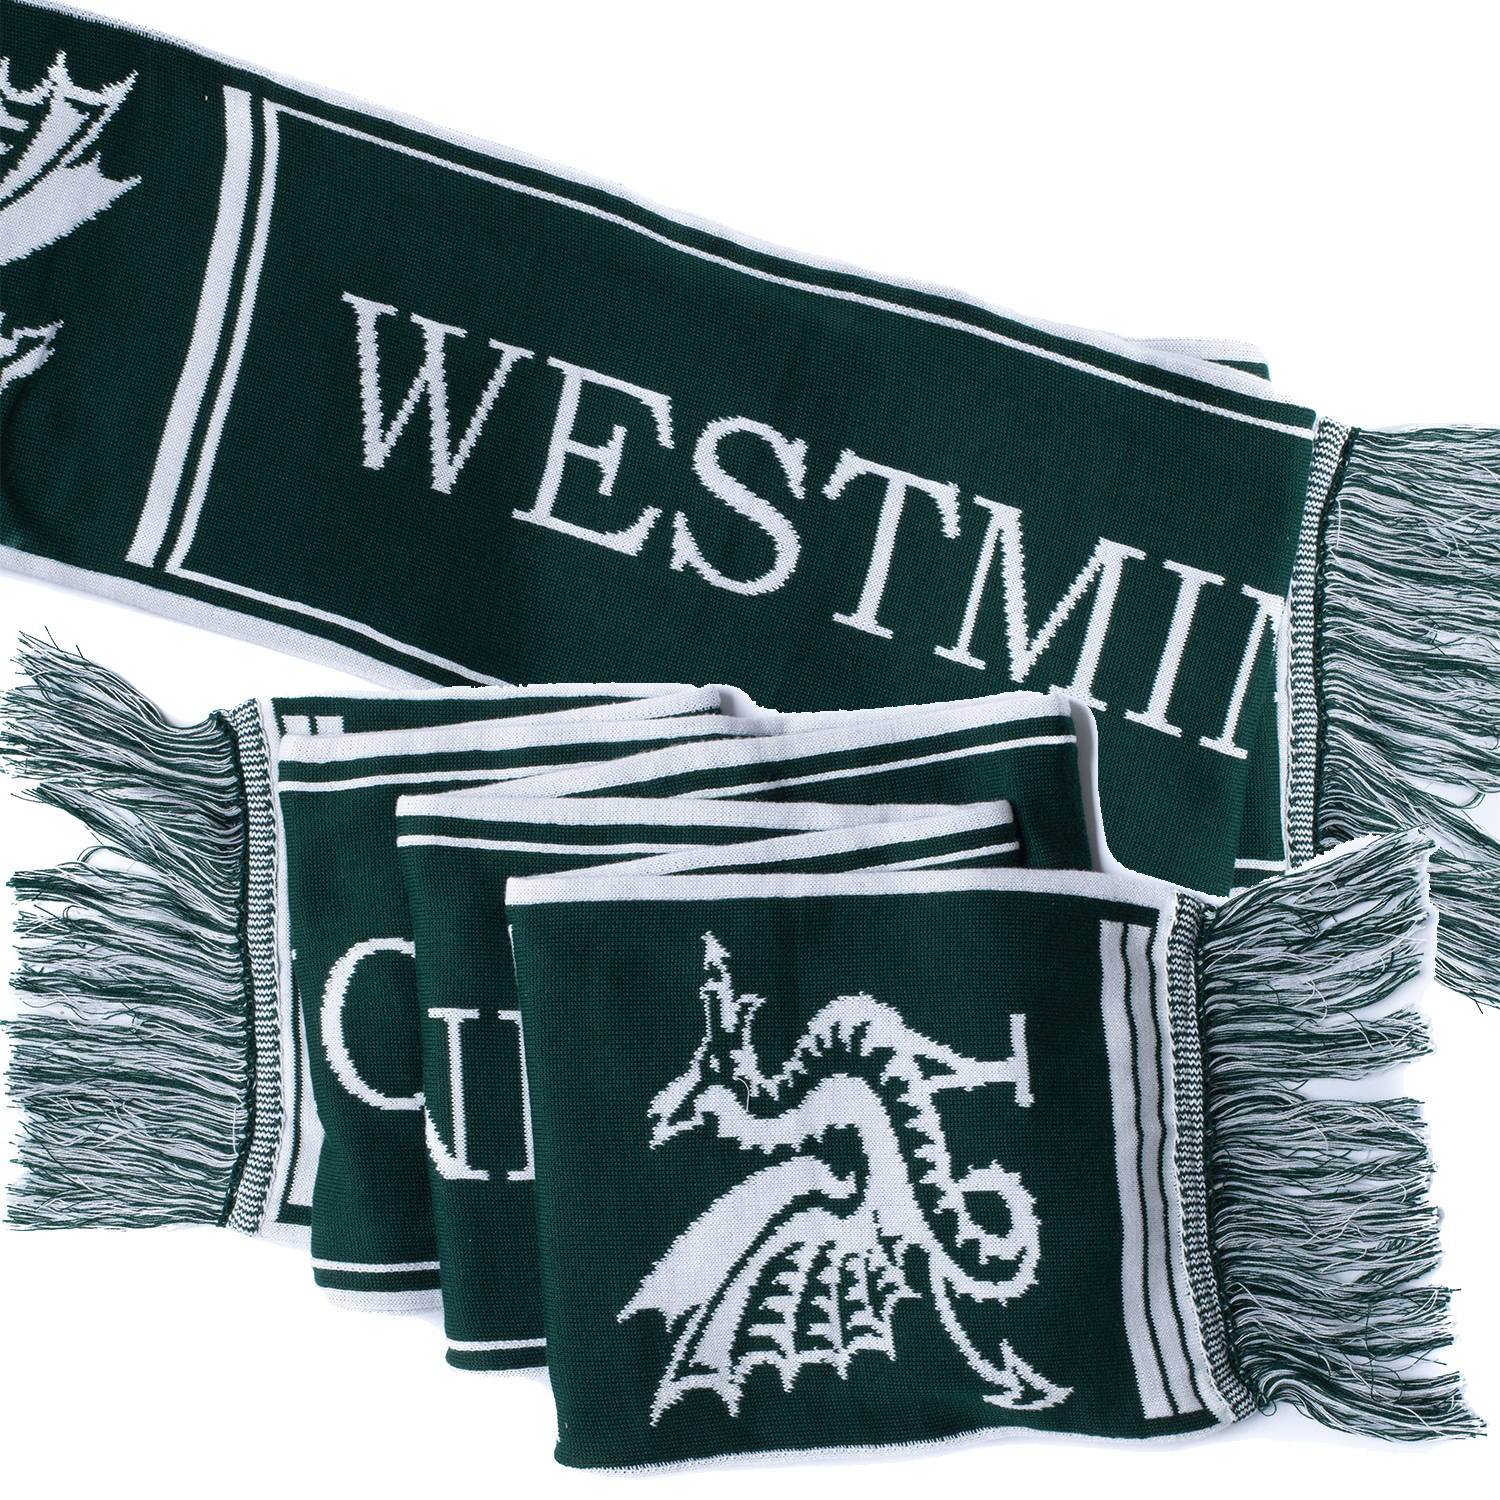 Oversized knitted scarf for Westminster School